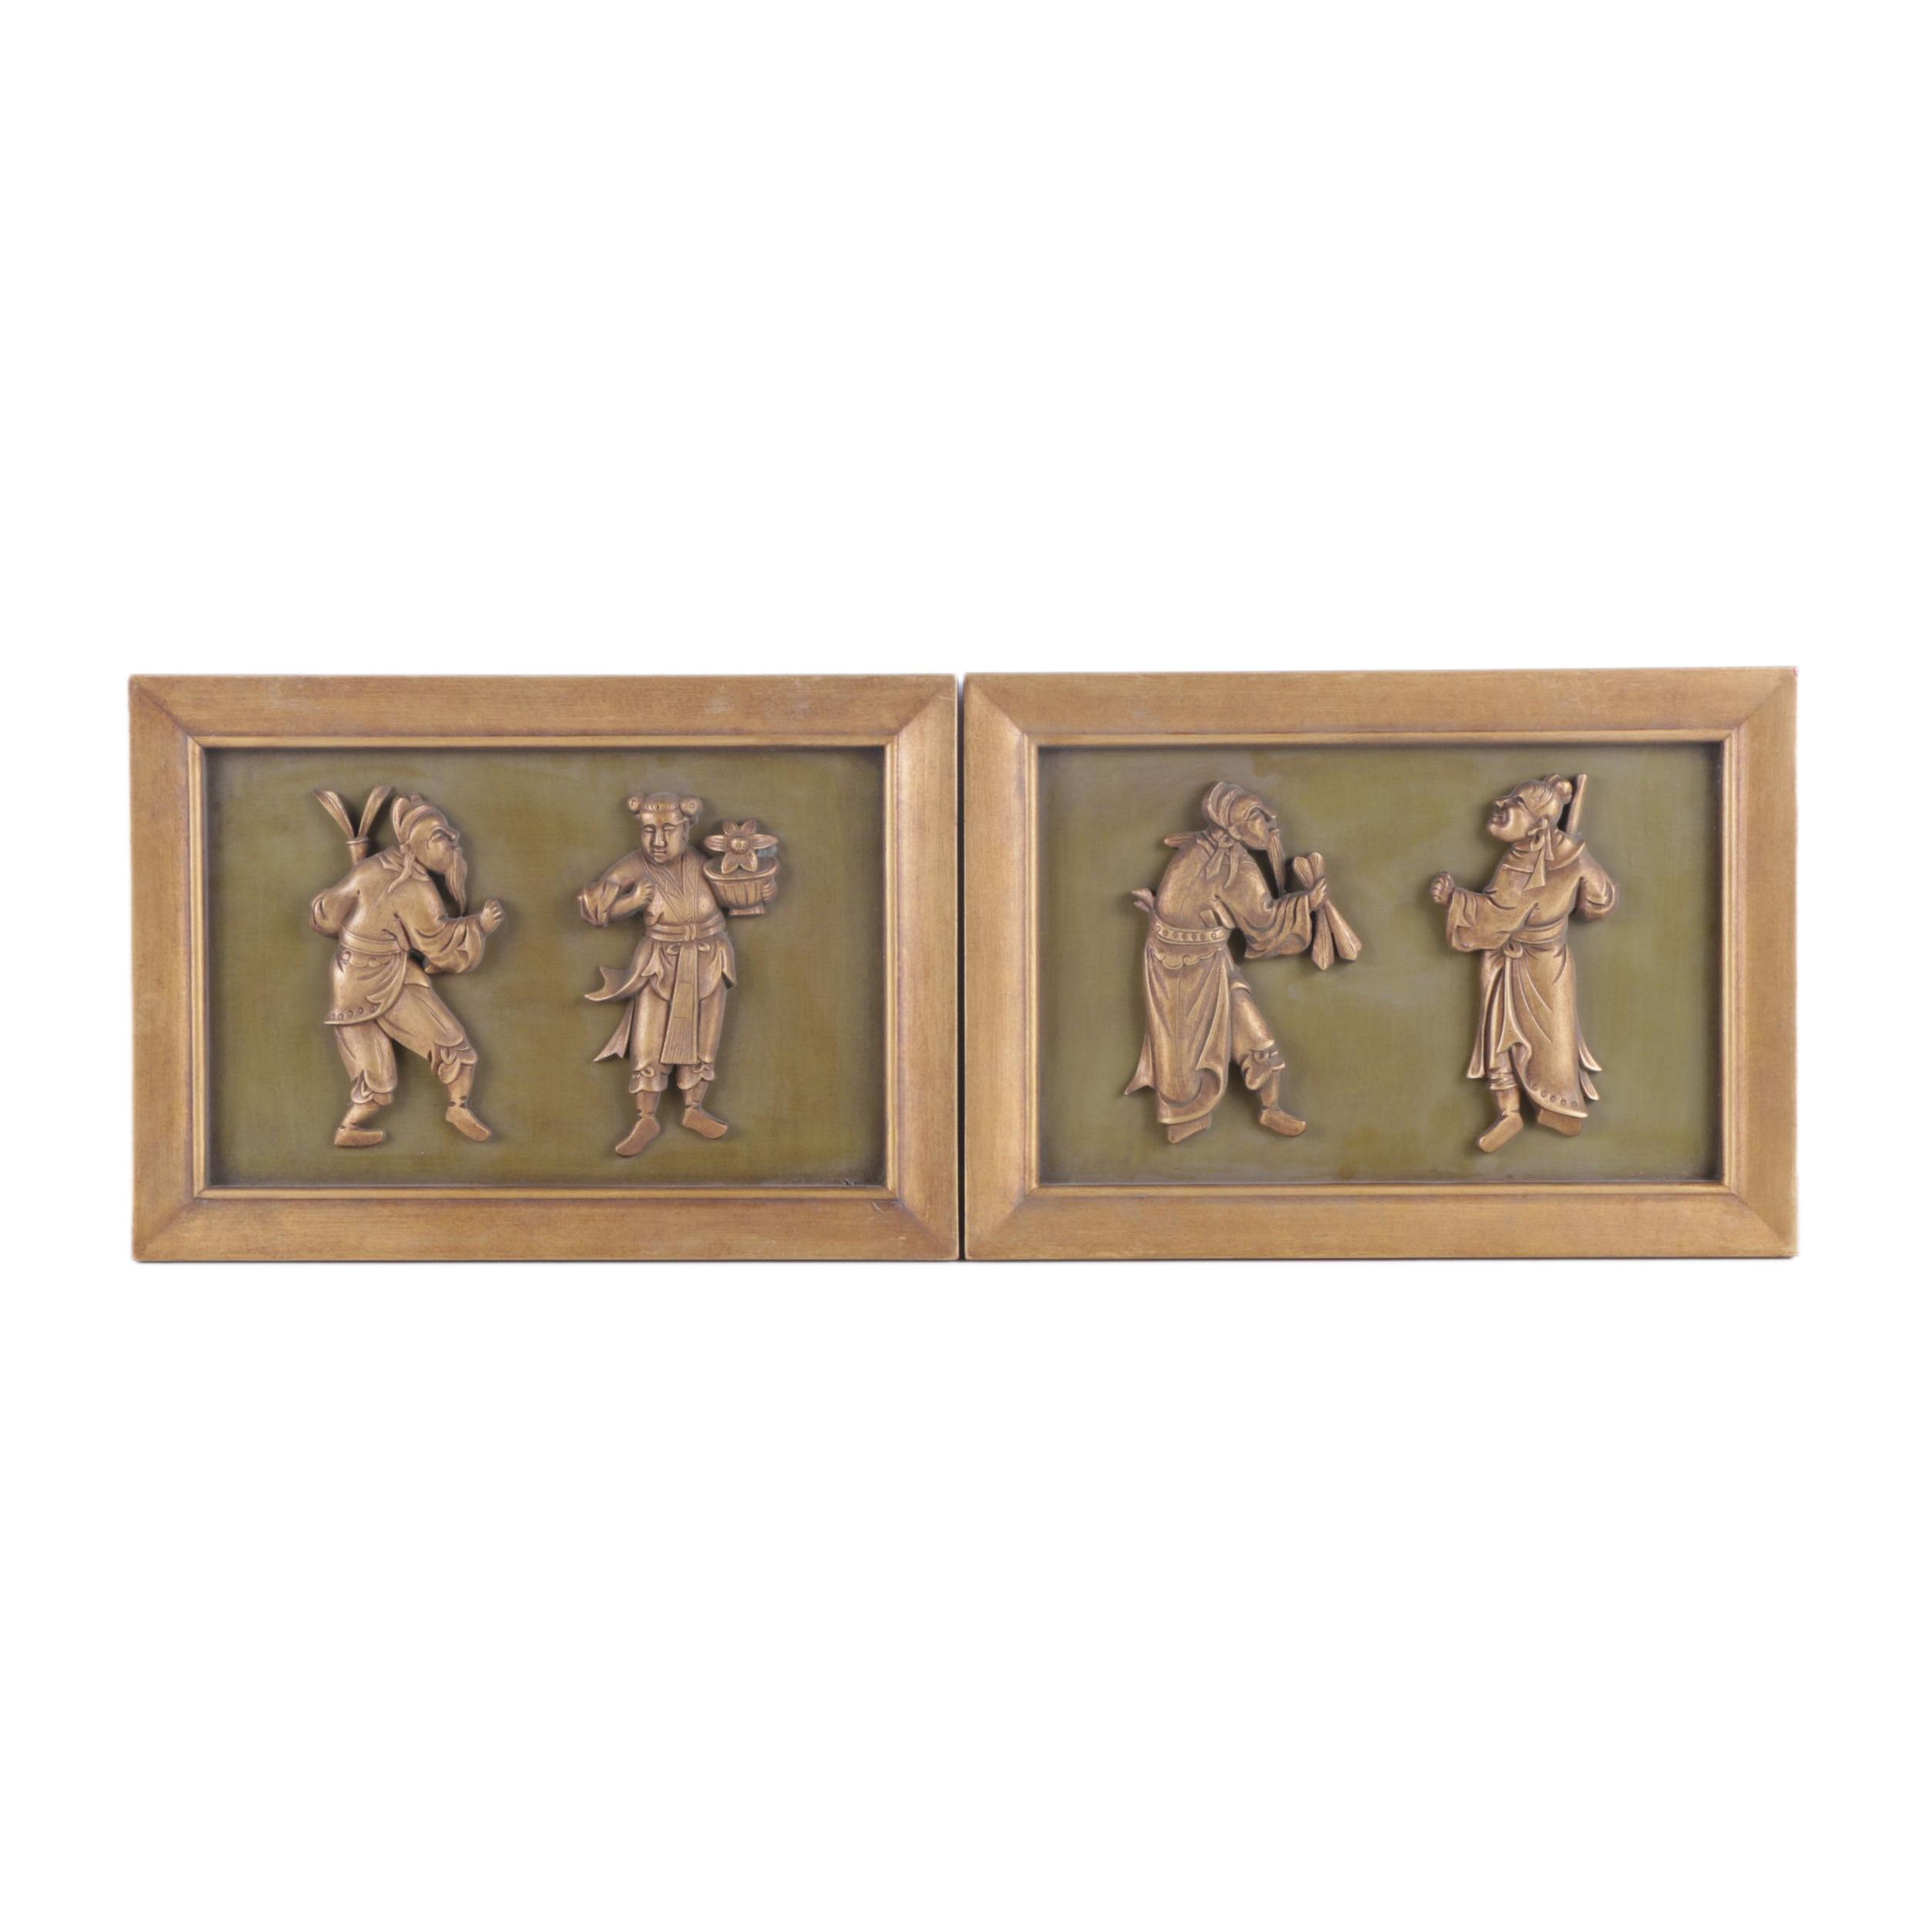 Chinese Inspired Carved Wood Relief Panels of Genre Scenes